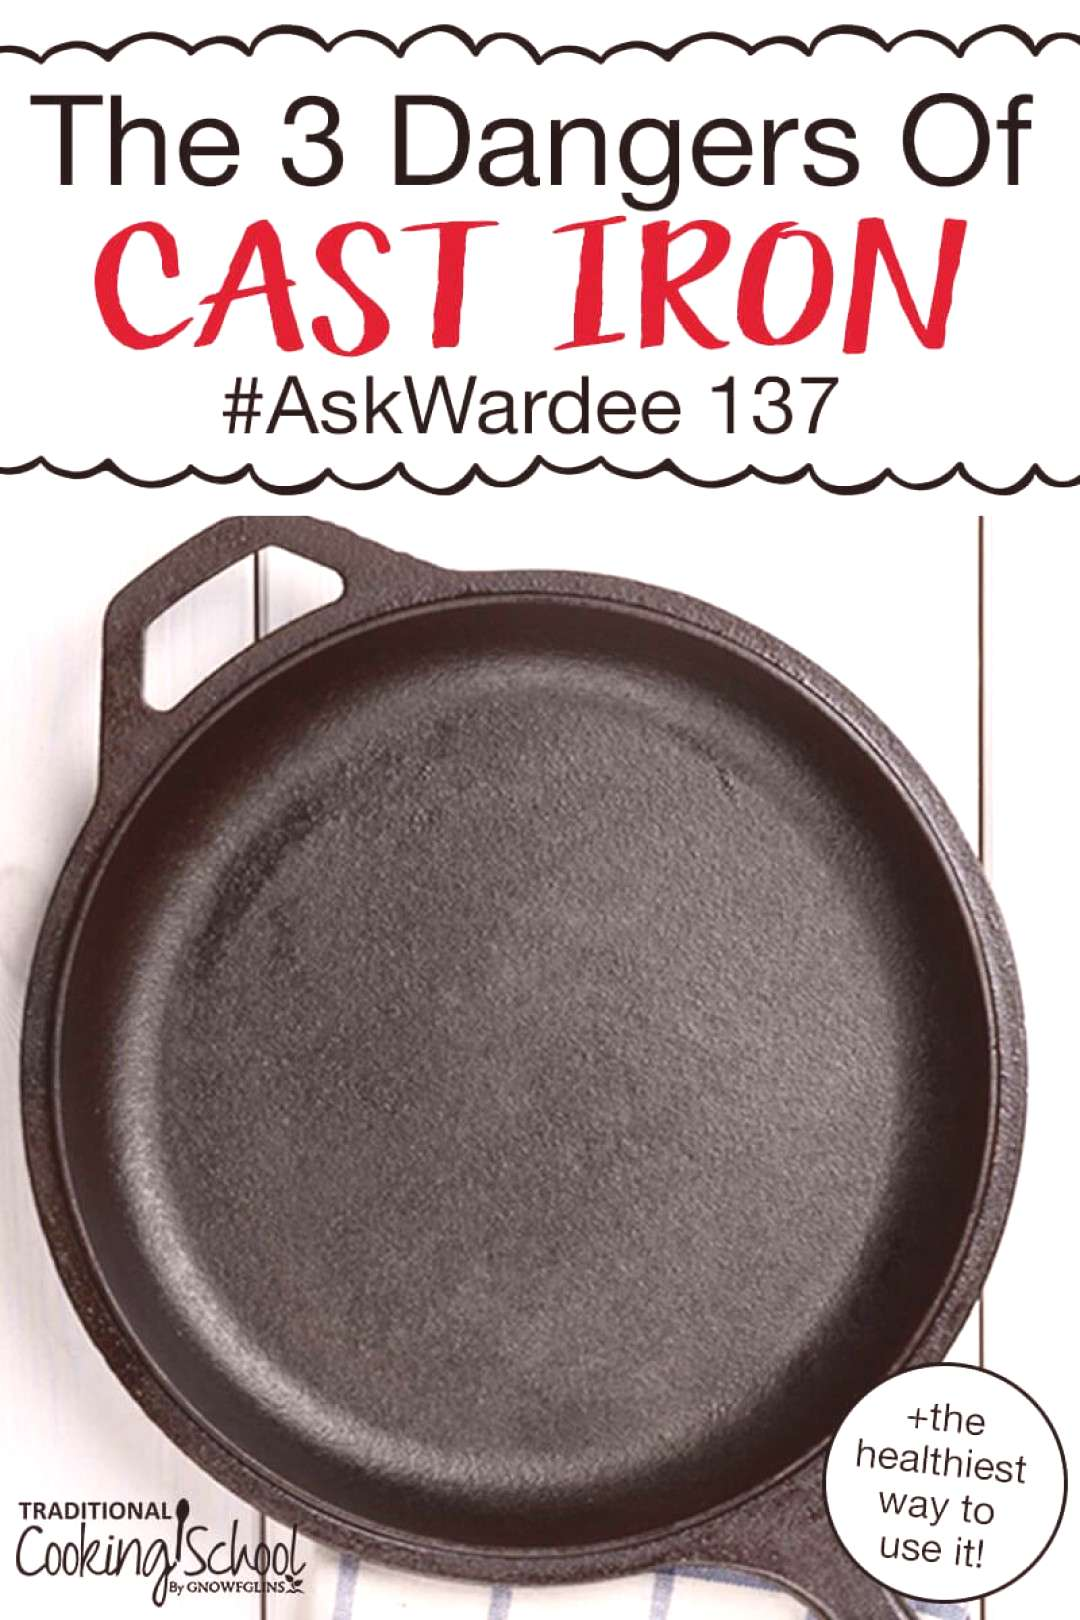 A cast iron skillet is arguably a traditional cook's best friend! But is there lead or other heavy